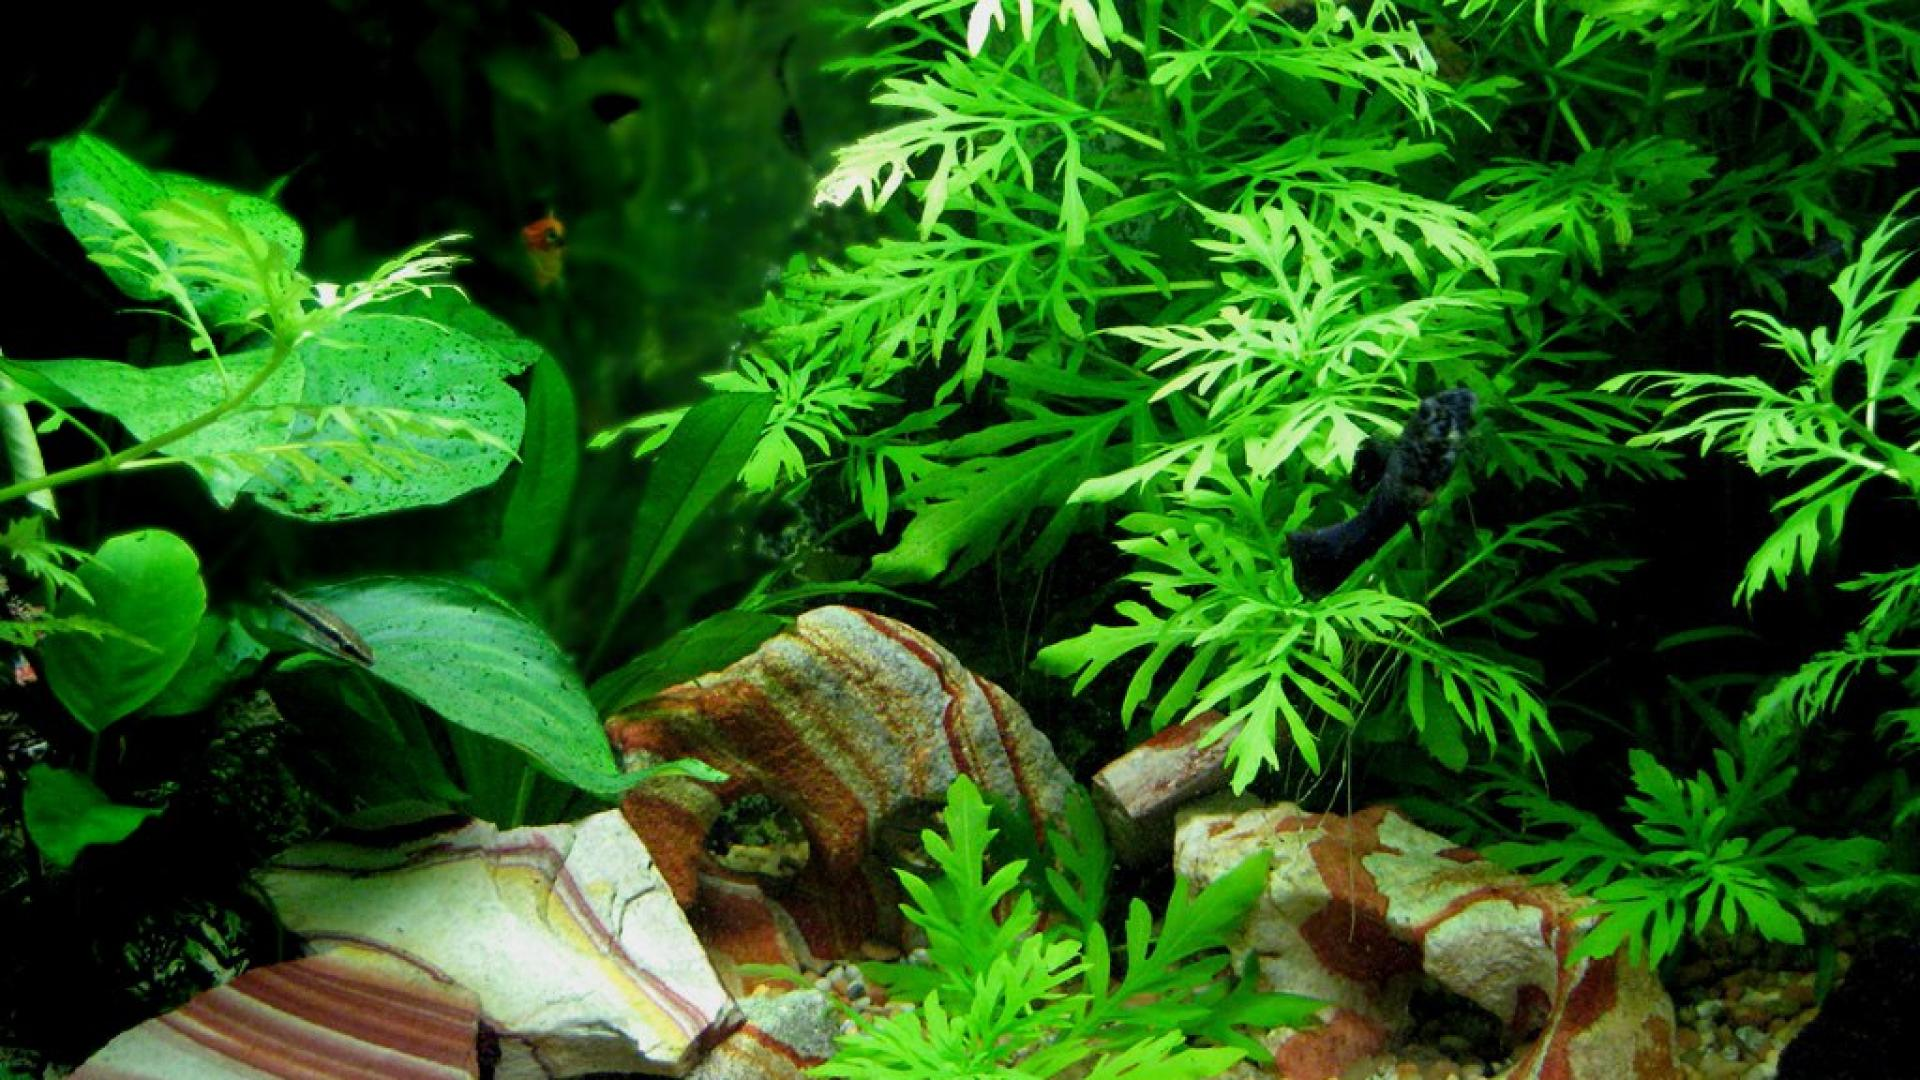 Fish Tank HD Wallpaper - WallpaperSafari